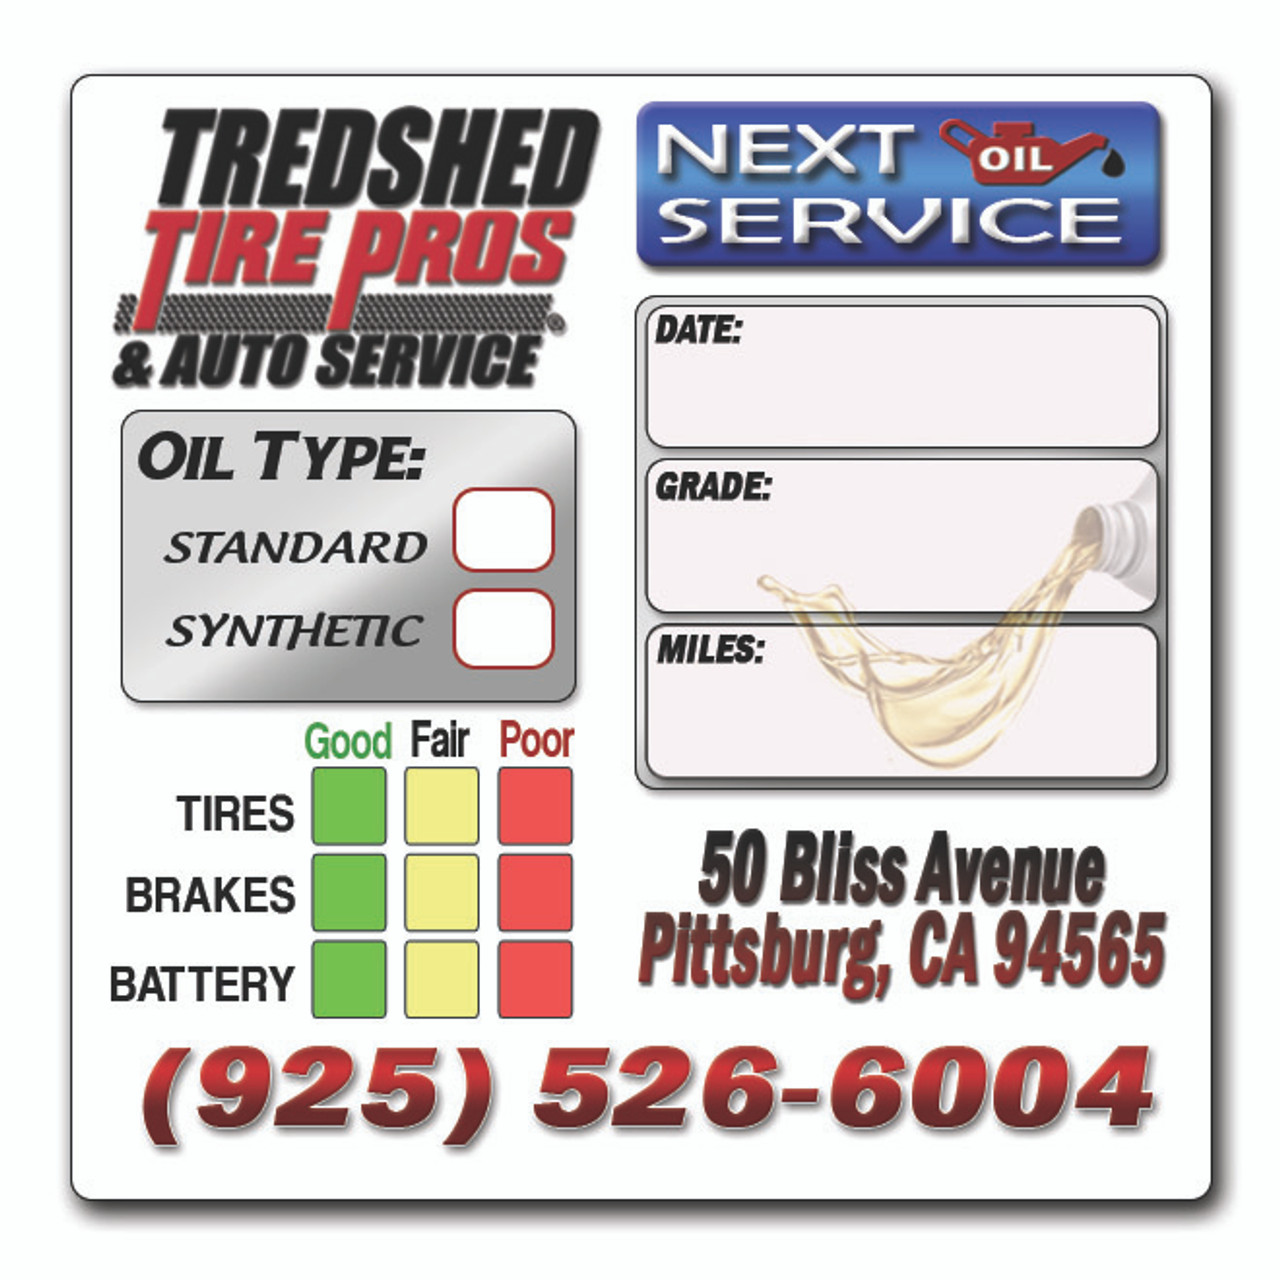 Custom Oil Change Reminder Stickers 2 X 2 Full Color Re Orders Ship Within 24 Hours